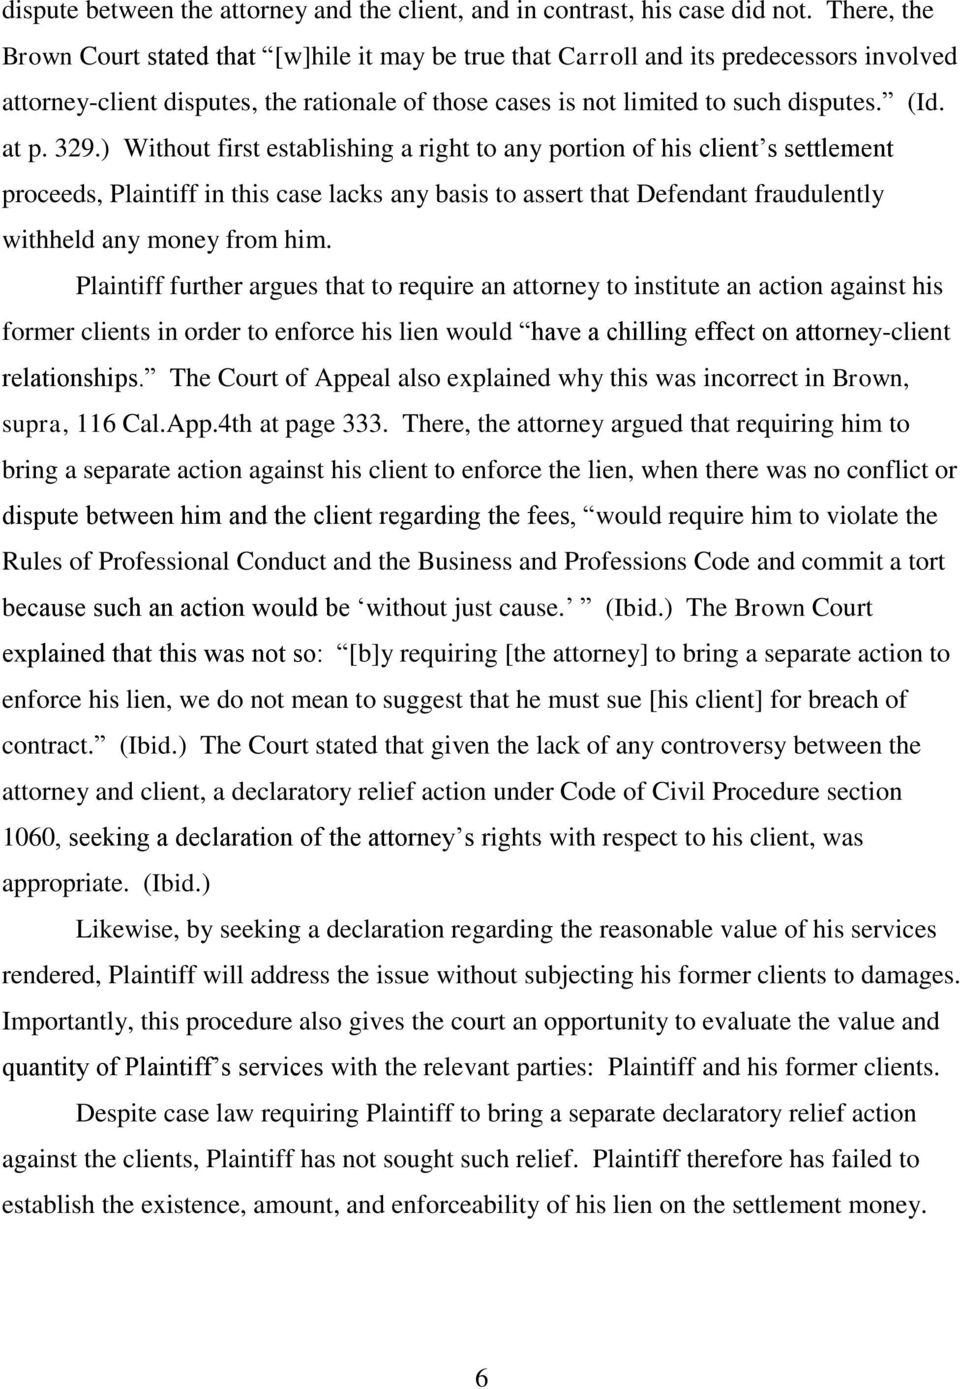 329.) Without first establishing a right to any portion of his client s settlement proceeds, Plaintiff in this case lacks any basis to assert that Defendant fraudulently withheld any money from him.